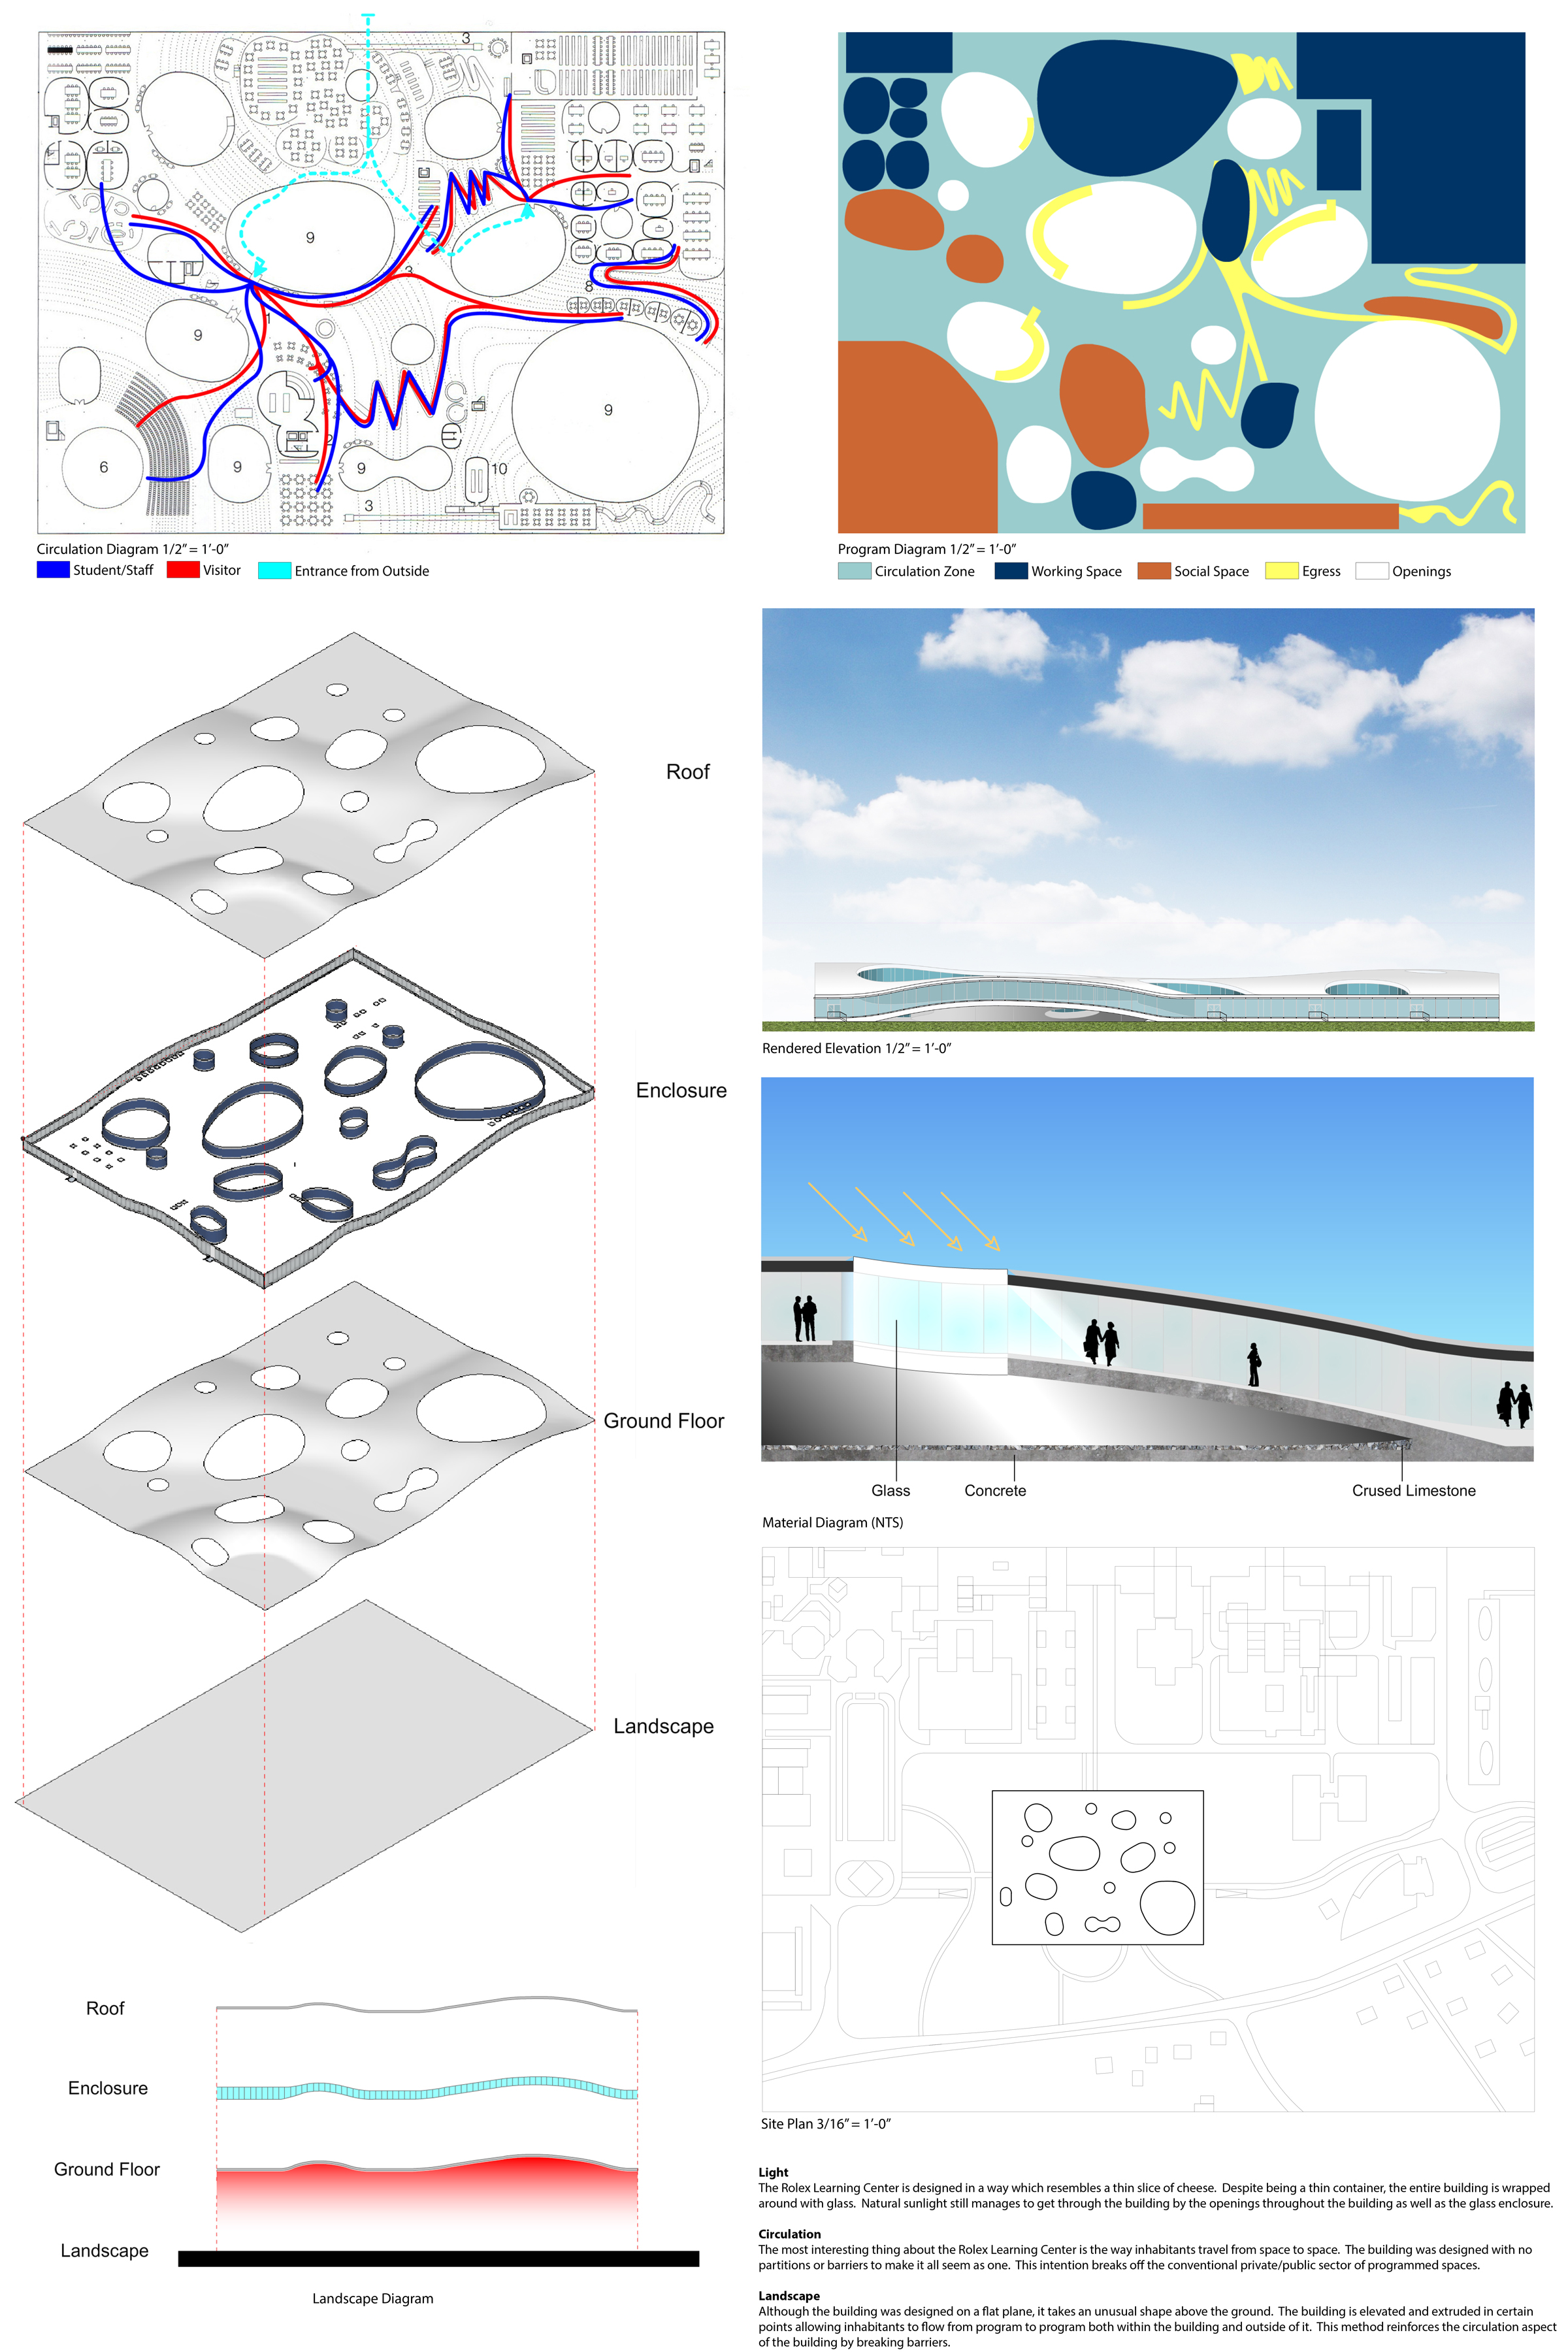 email flow diagram meiosis vs mitosis rolex learning center | arch301